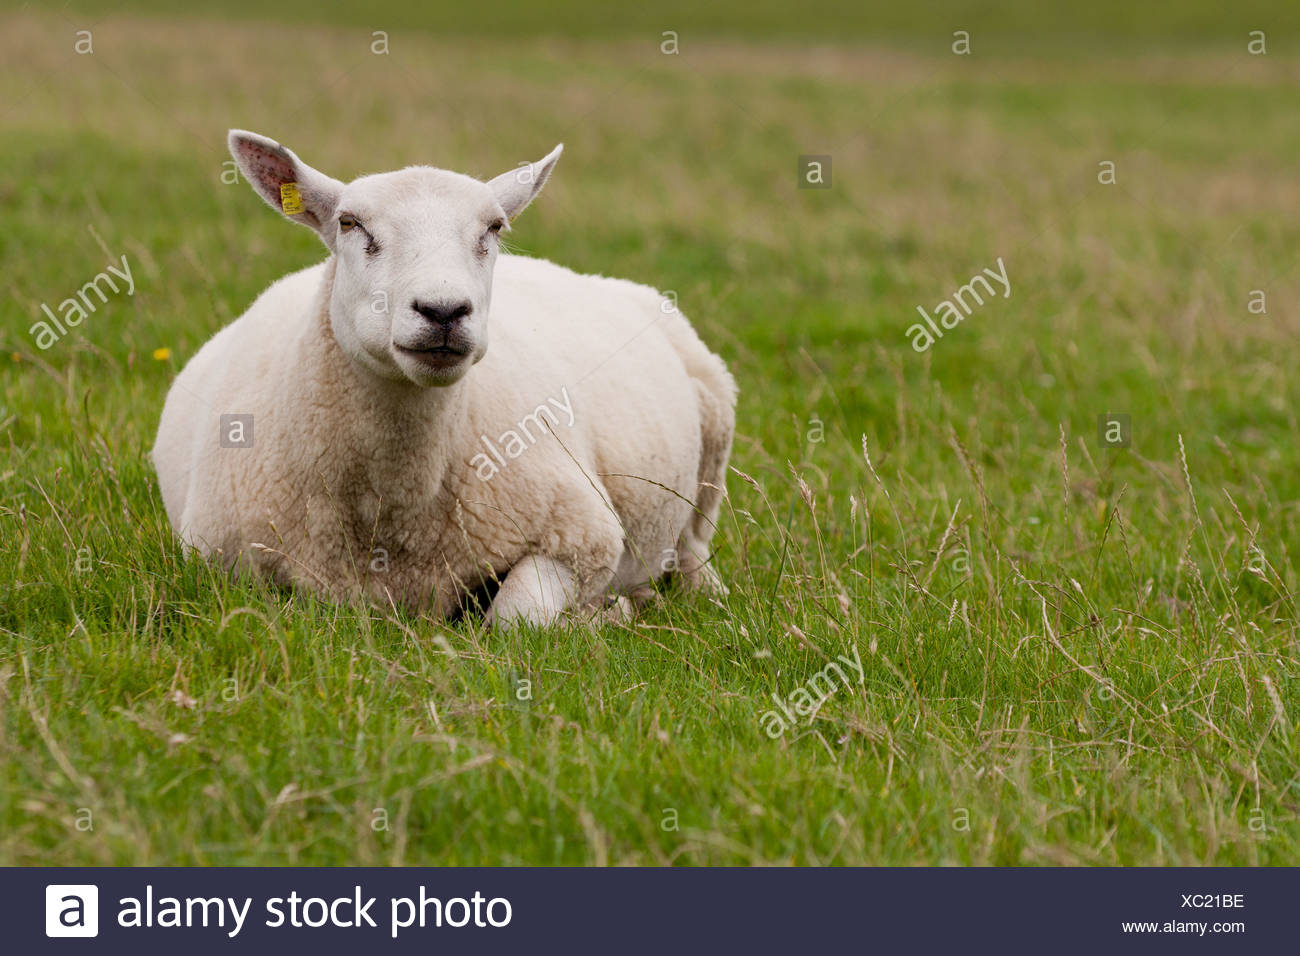 Sheep (Ovis orientalis aries) on a dyke, ruminating, North Frisia, Schleswig-Holstein, Germany, Europe - Stock Image